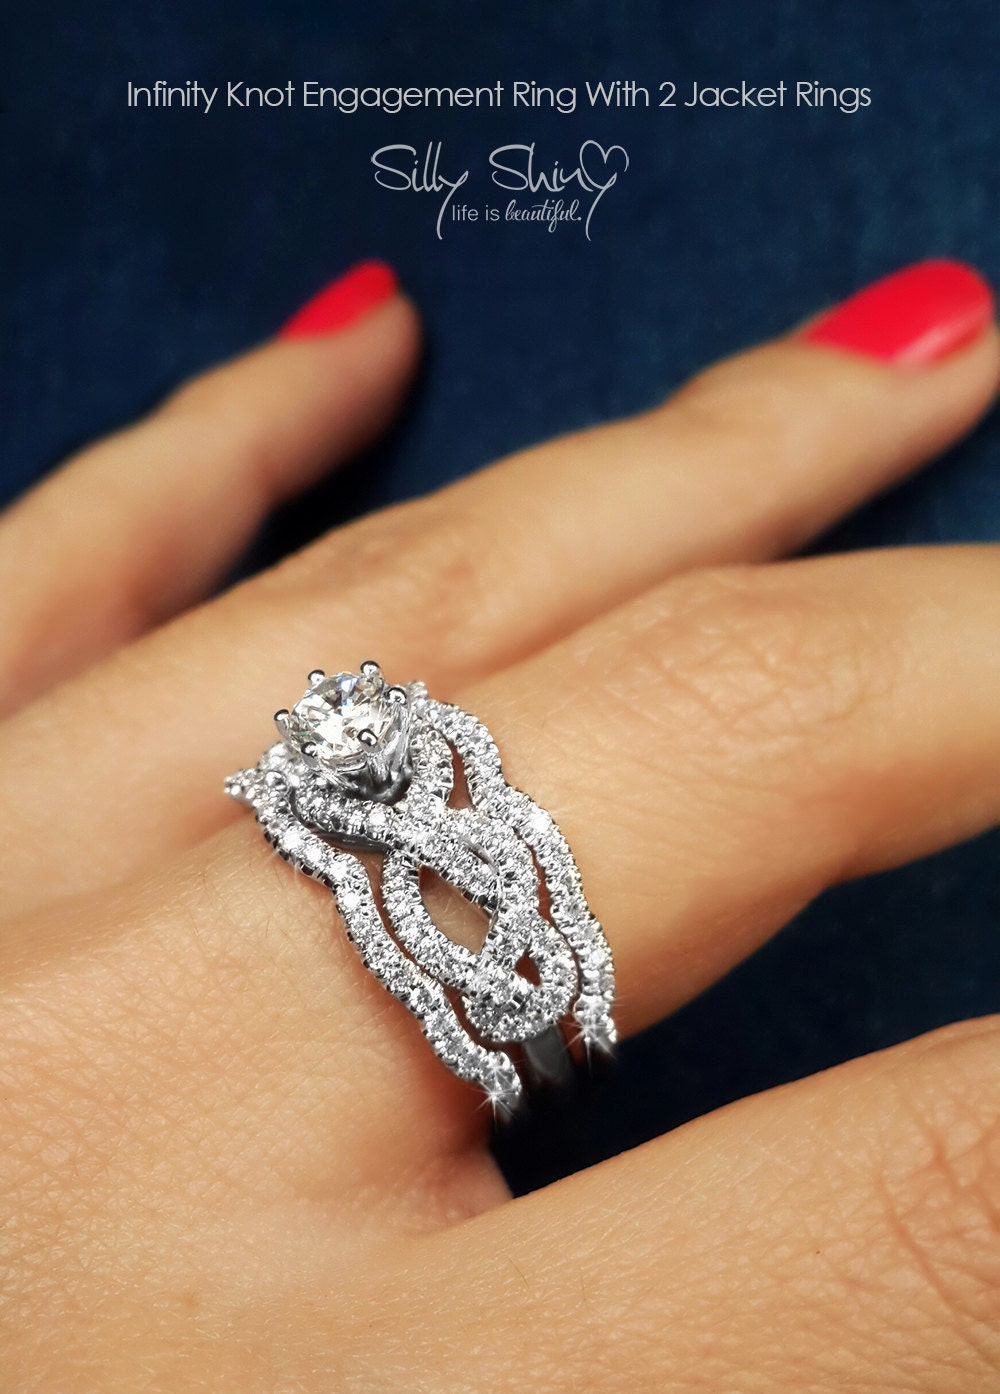 infinity engagement rings infinity knot by sillyshinydiamonds